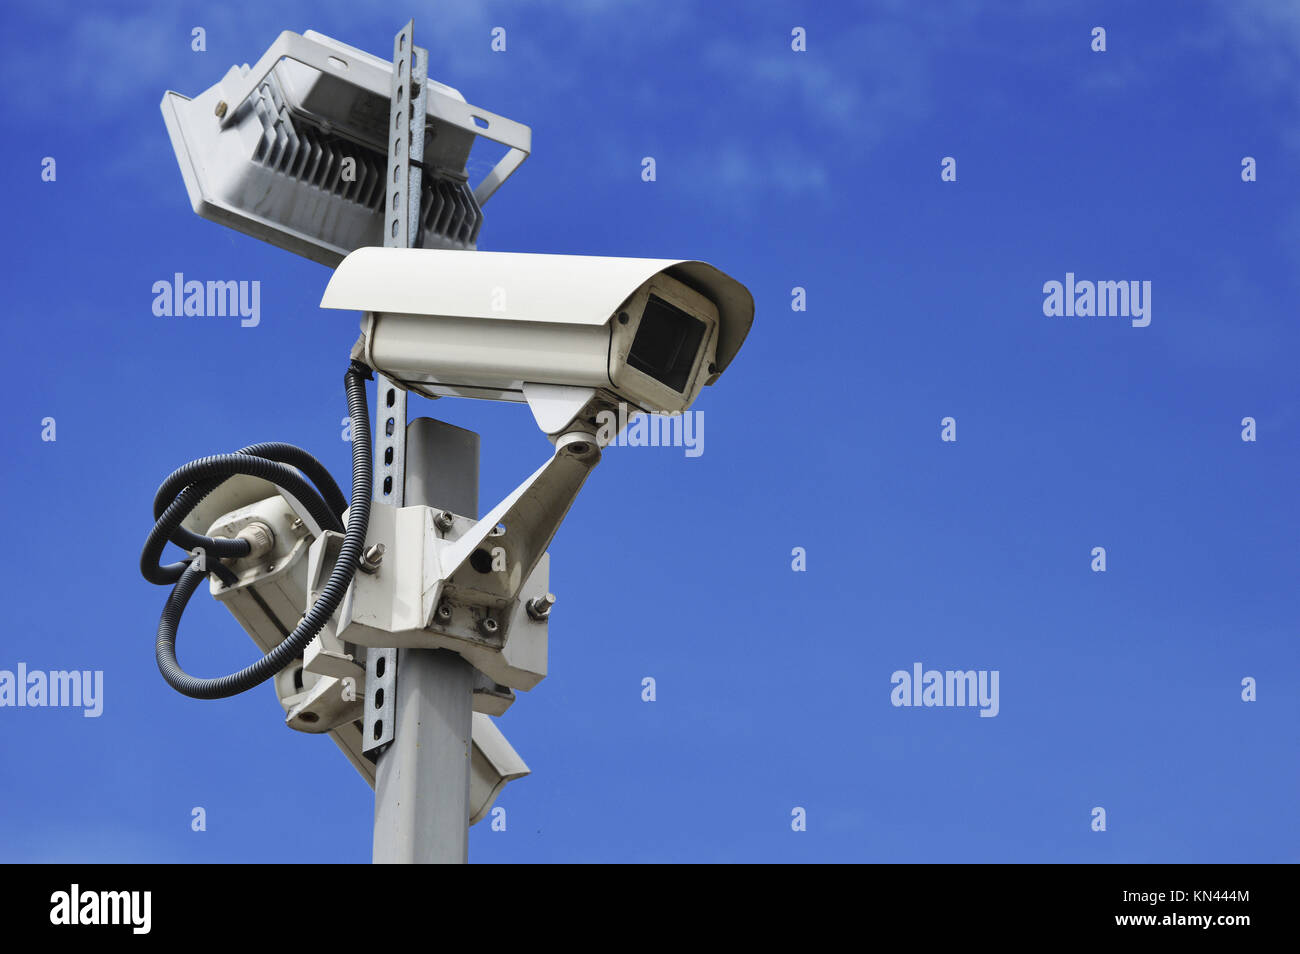 Hi-tech dome type camera over a blue sky. - Stock Image